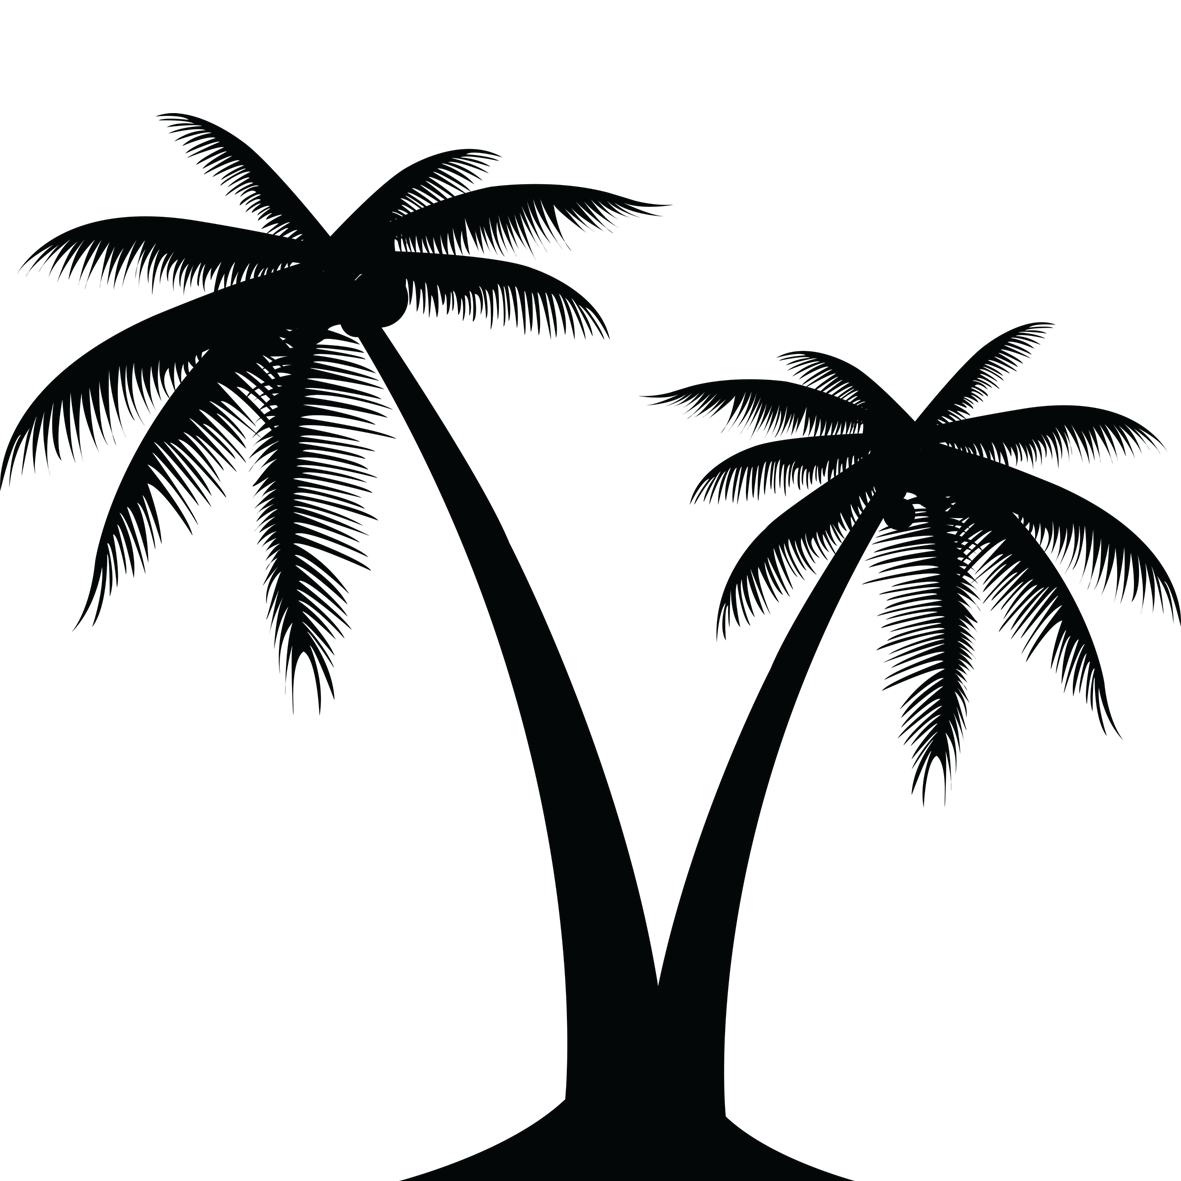 1181x1181 Cp Paurb Palm Tree Graphic Silhouette Source Abuse Report Simple